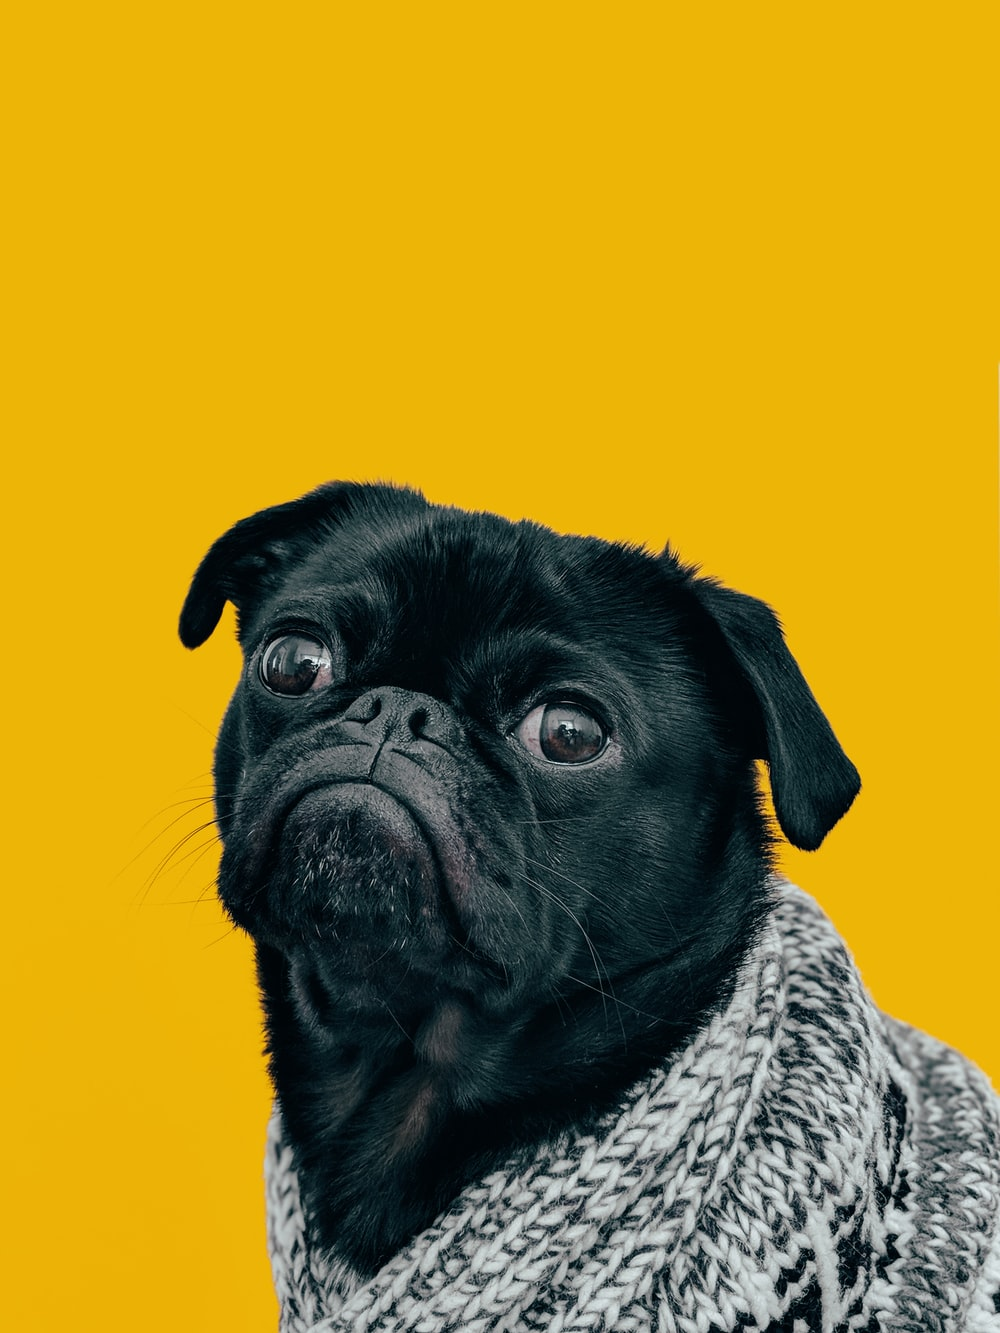 black pug with gray knit scarf